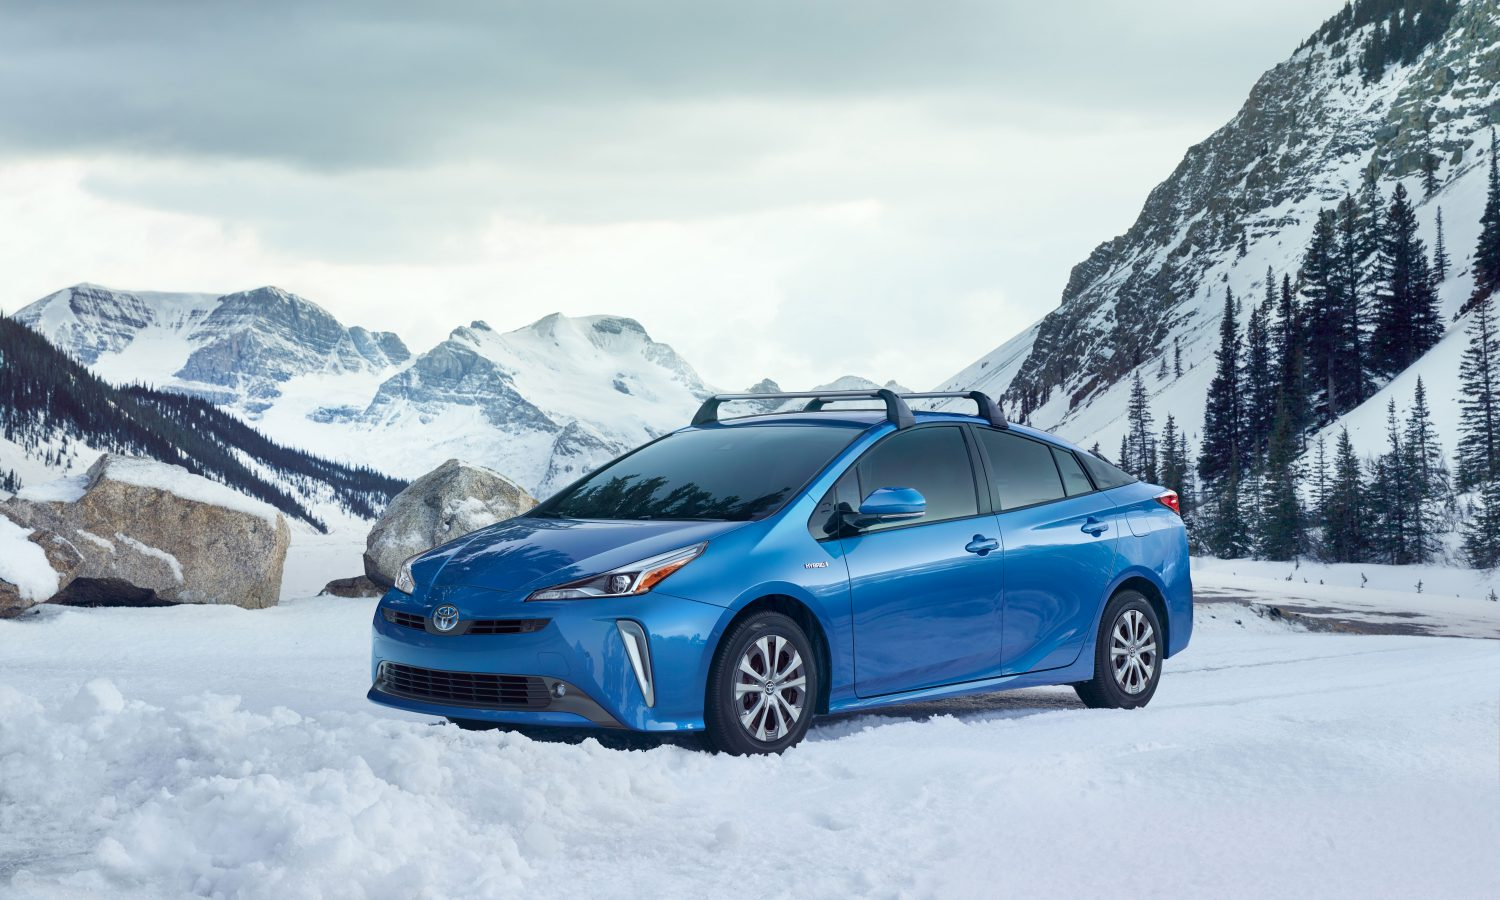 2019 Prius is Most Capable Yet Thanks to Available New AWD-e System